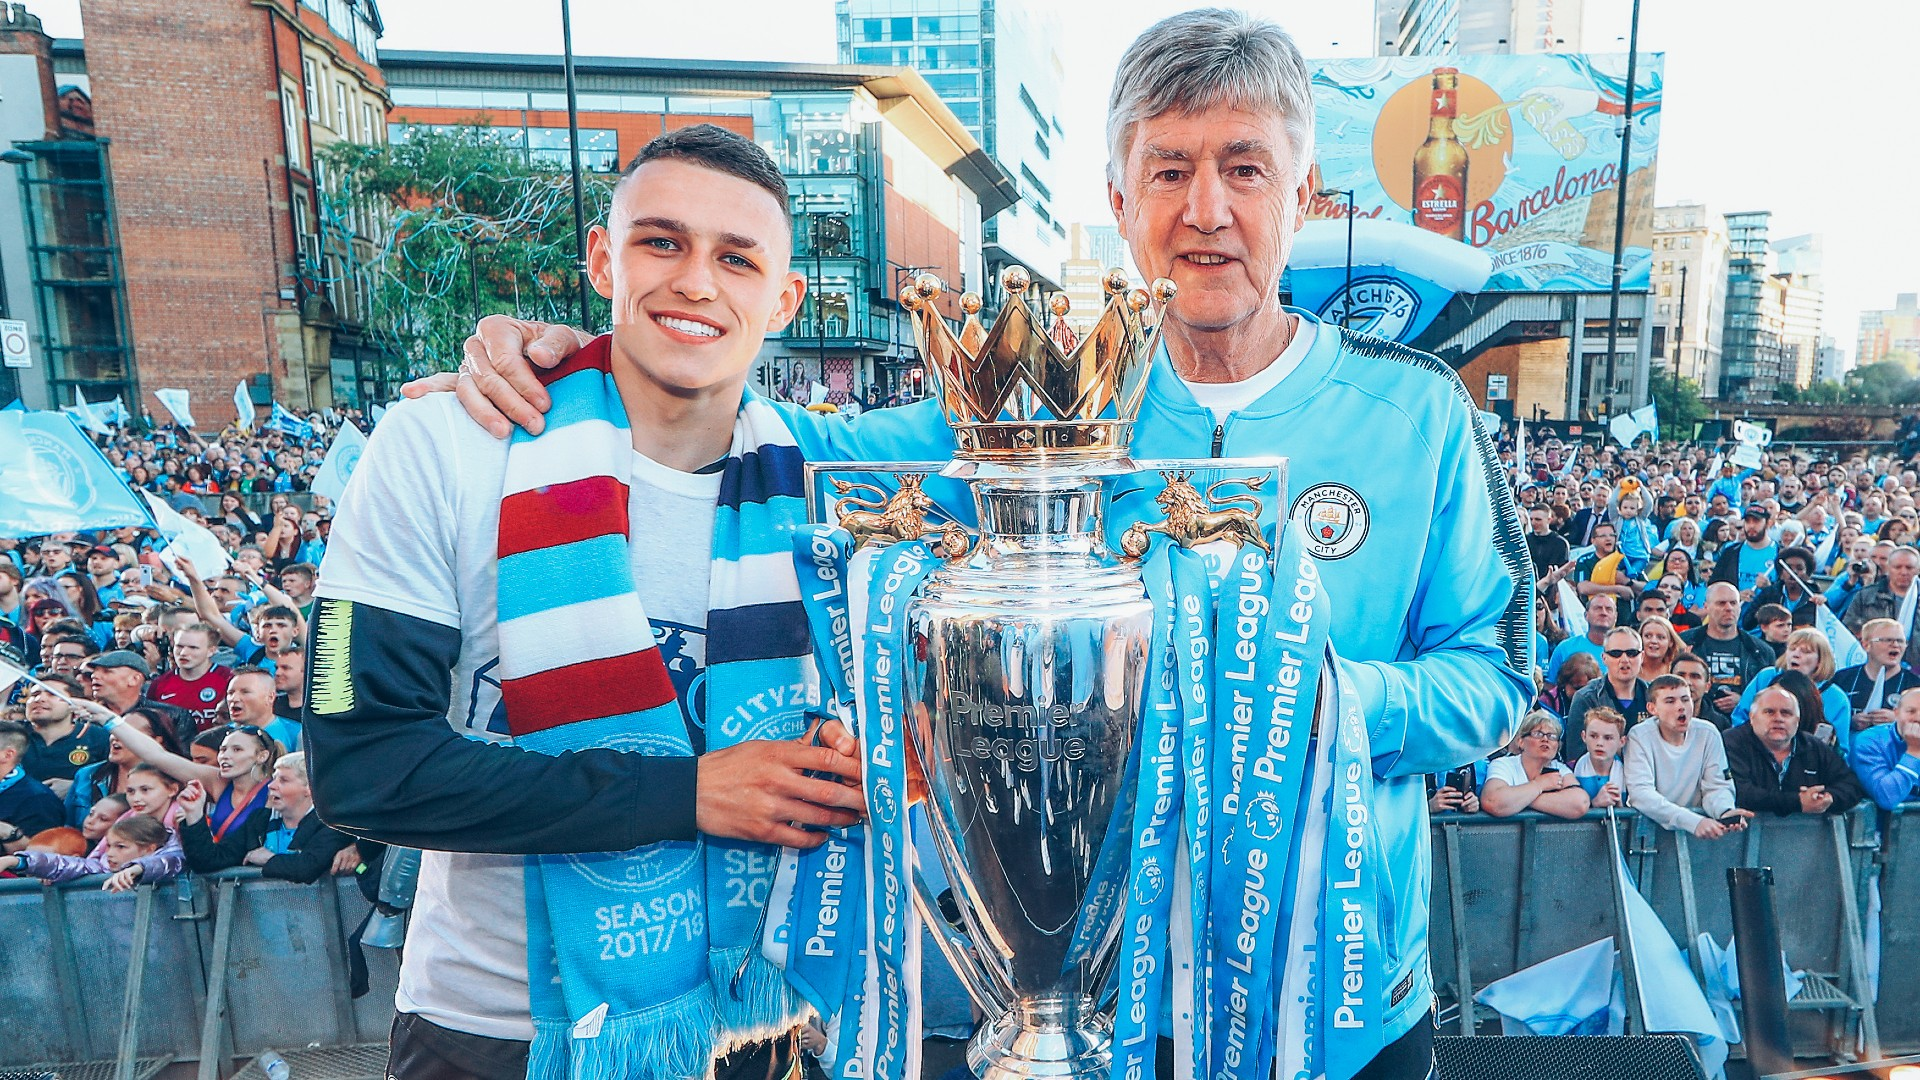 Brian Kidd leaves Manchester City after 12 years